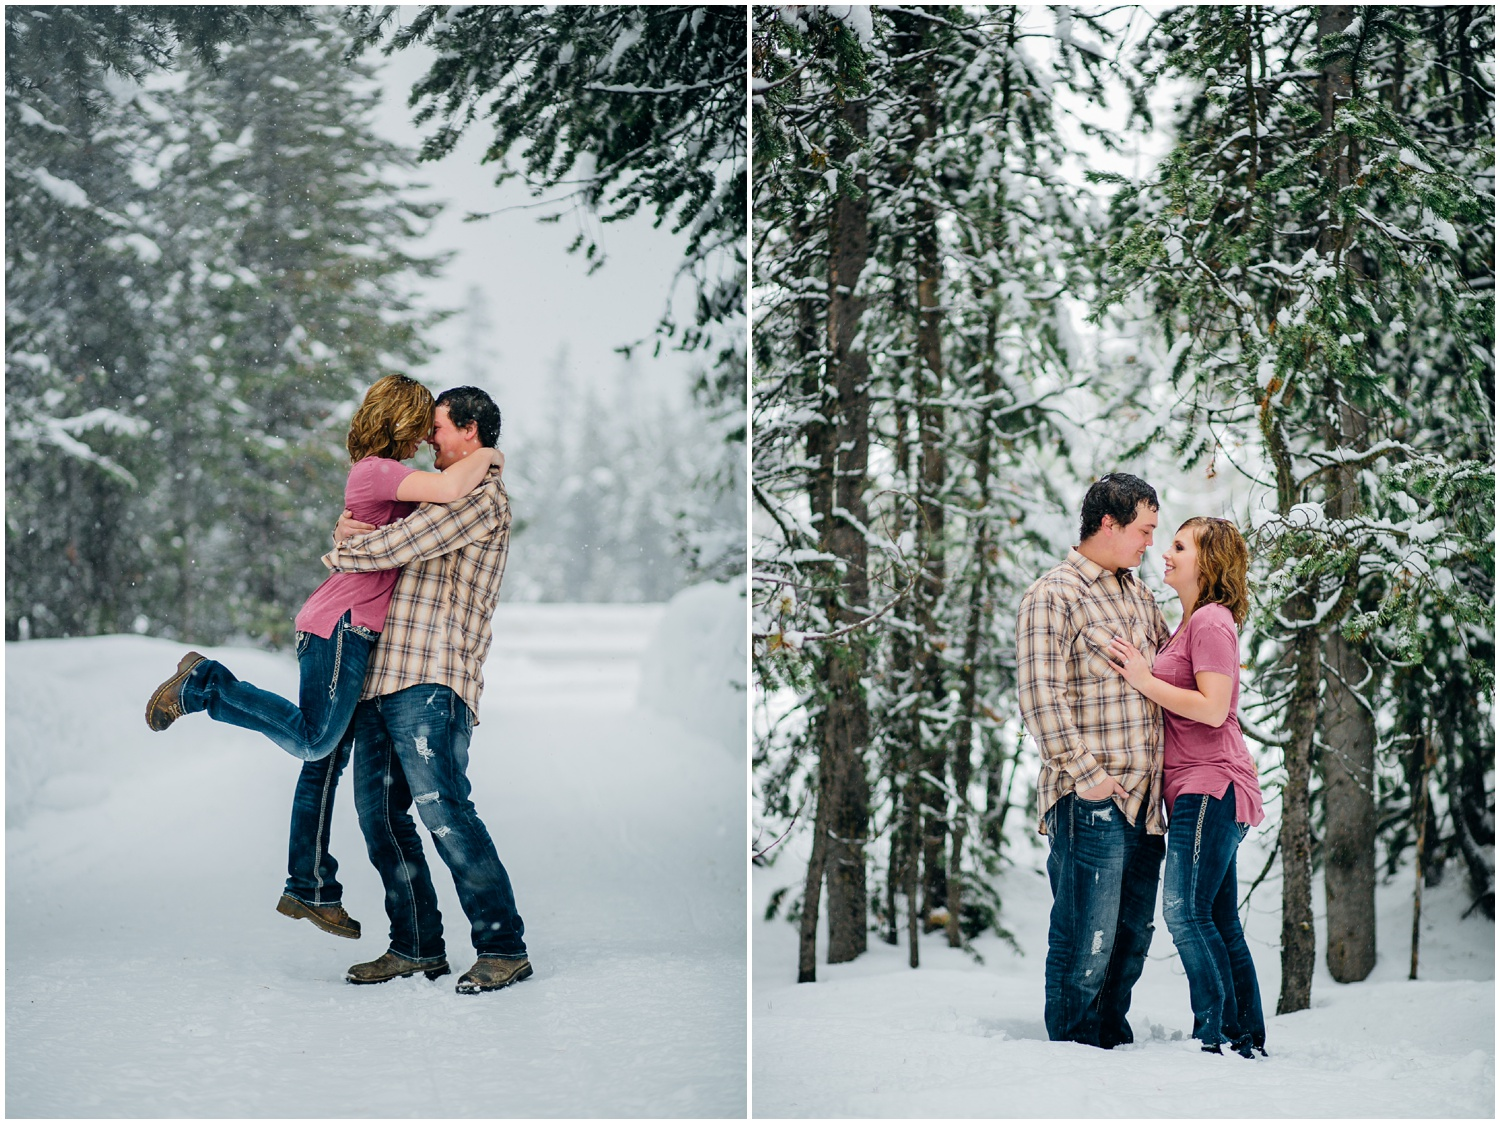 island-park-engagements-idaho-utah-wyoming-colorado-wedding-photographer_0230.jpg